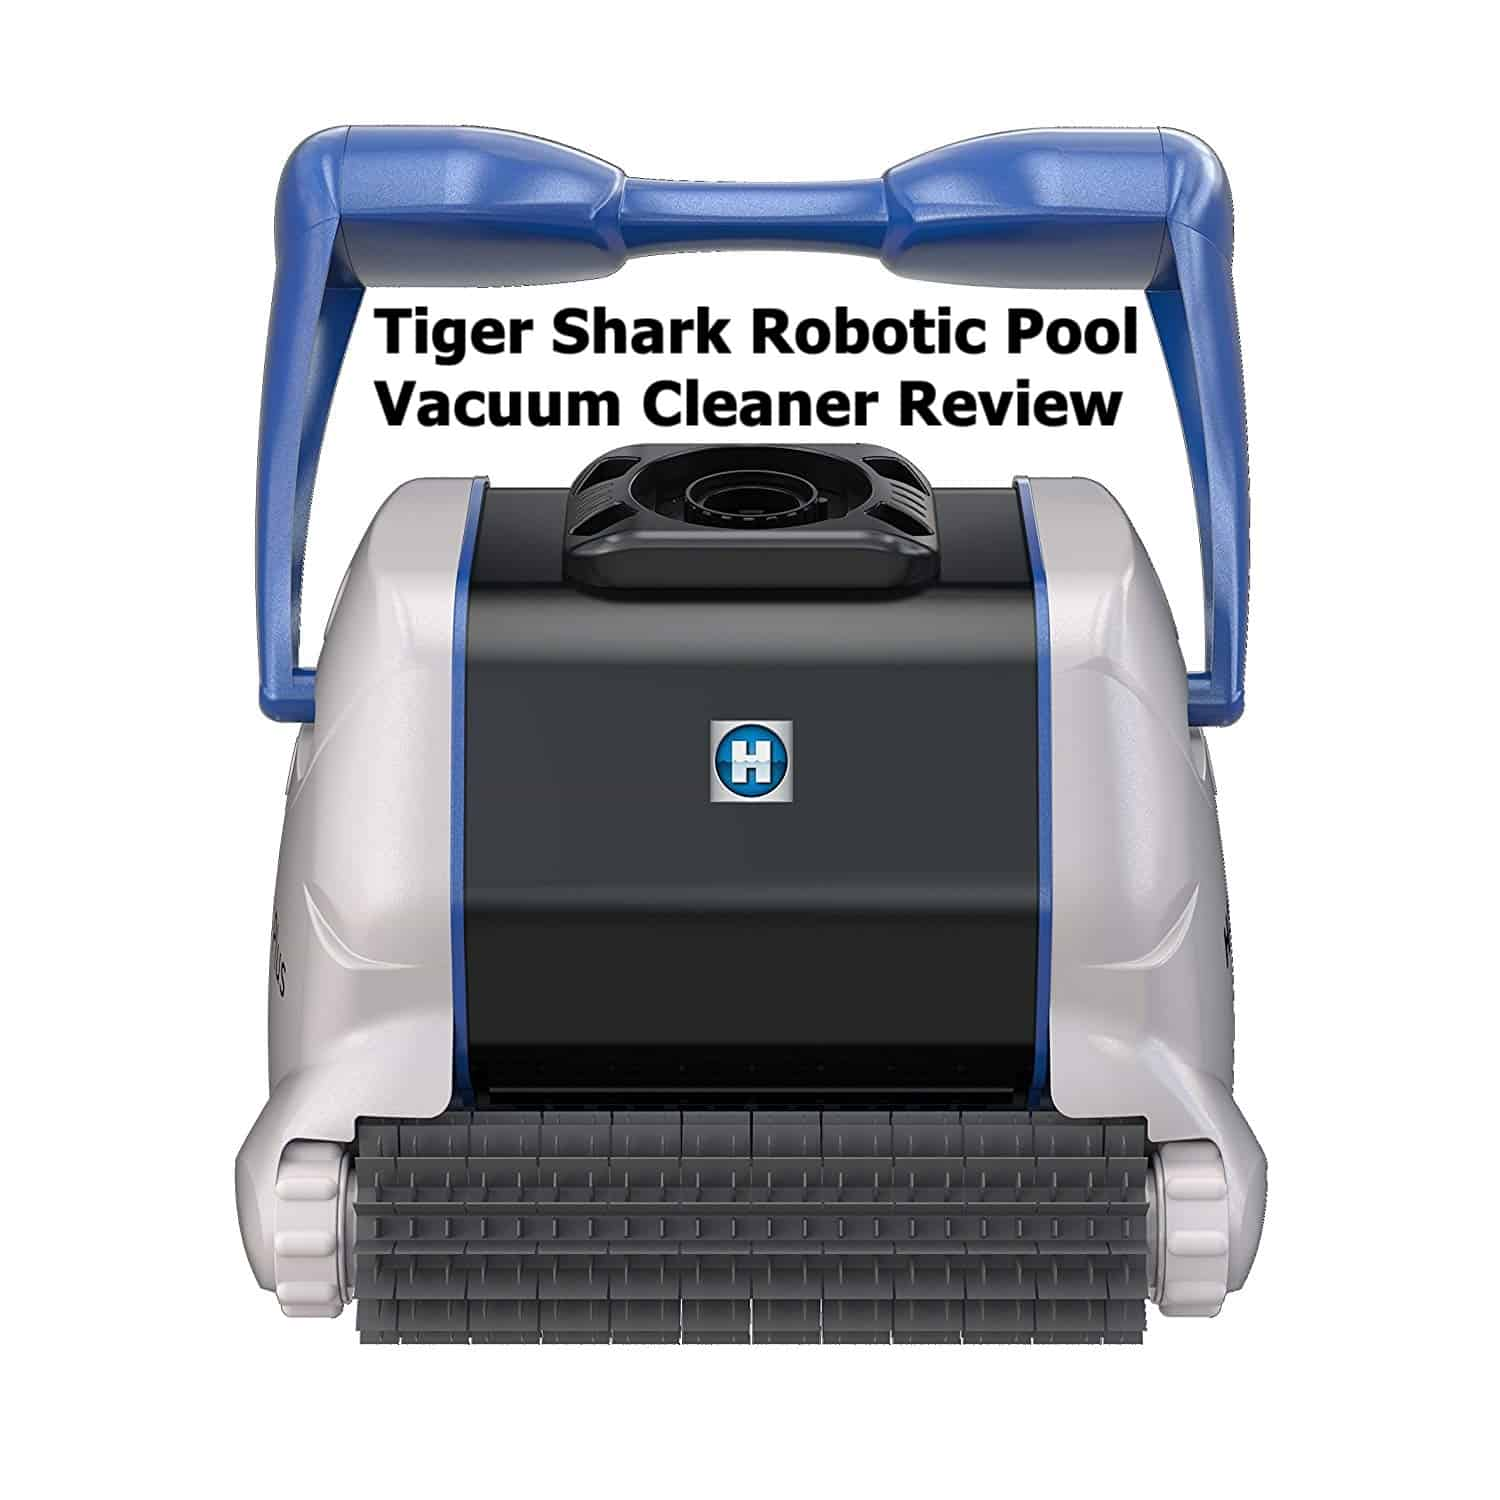 Tiger Shark Pool Cleaner review